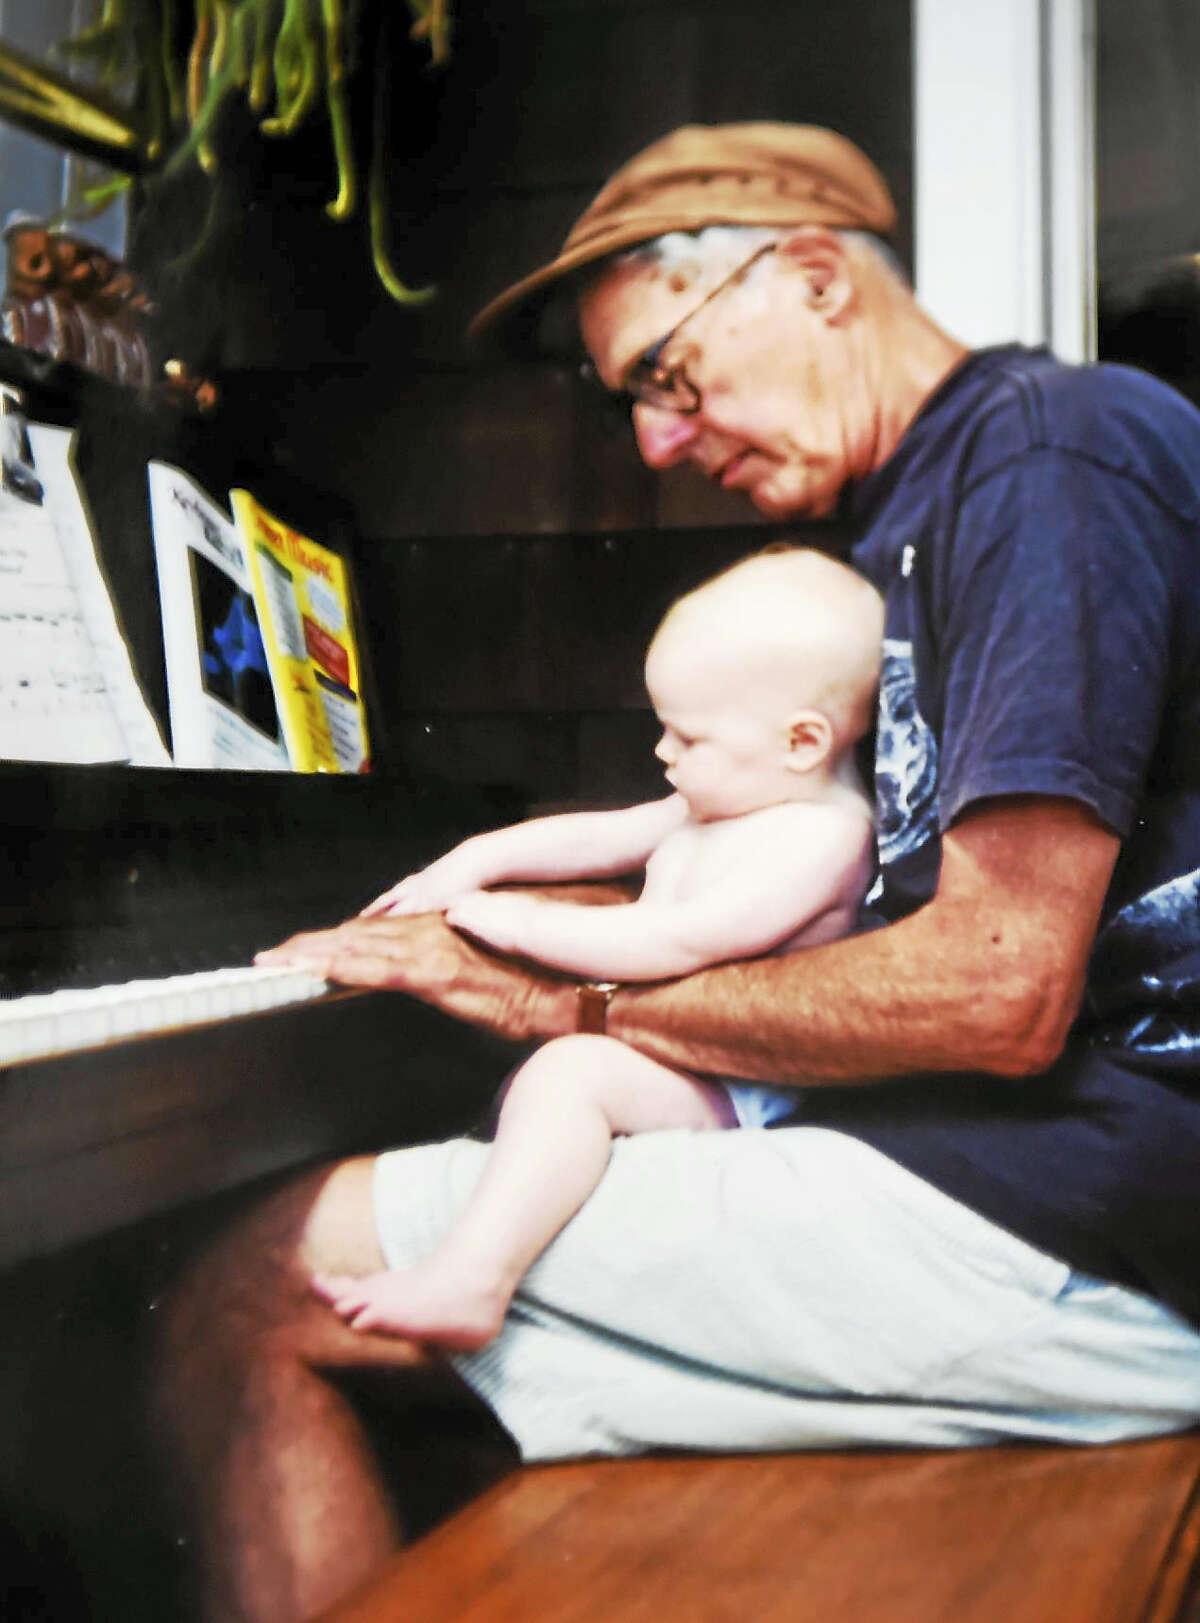 Walter Kaylin at his home in Old Lyme about 20 years ago with his granddaughter, Charlotte Beach. You could say she studied on the knees of the master. (Contributed photo by Jennifer Kaylin).